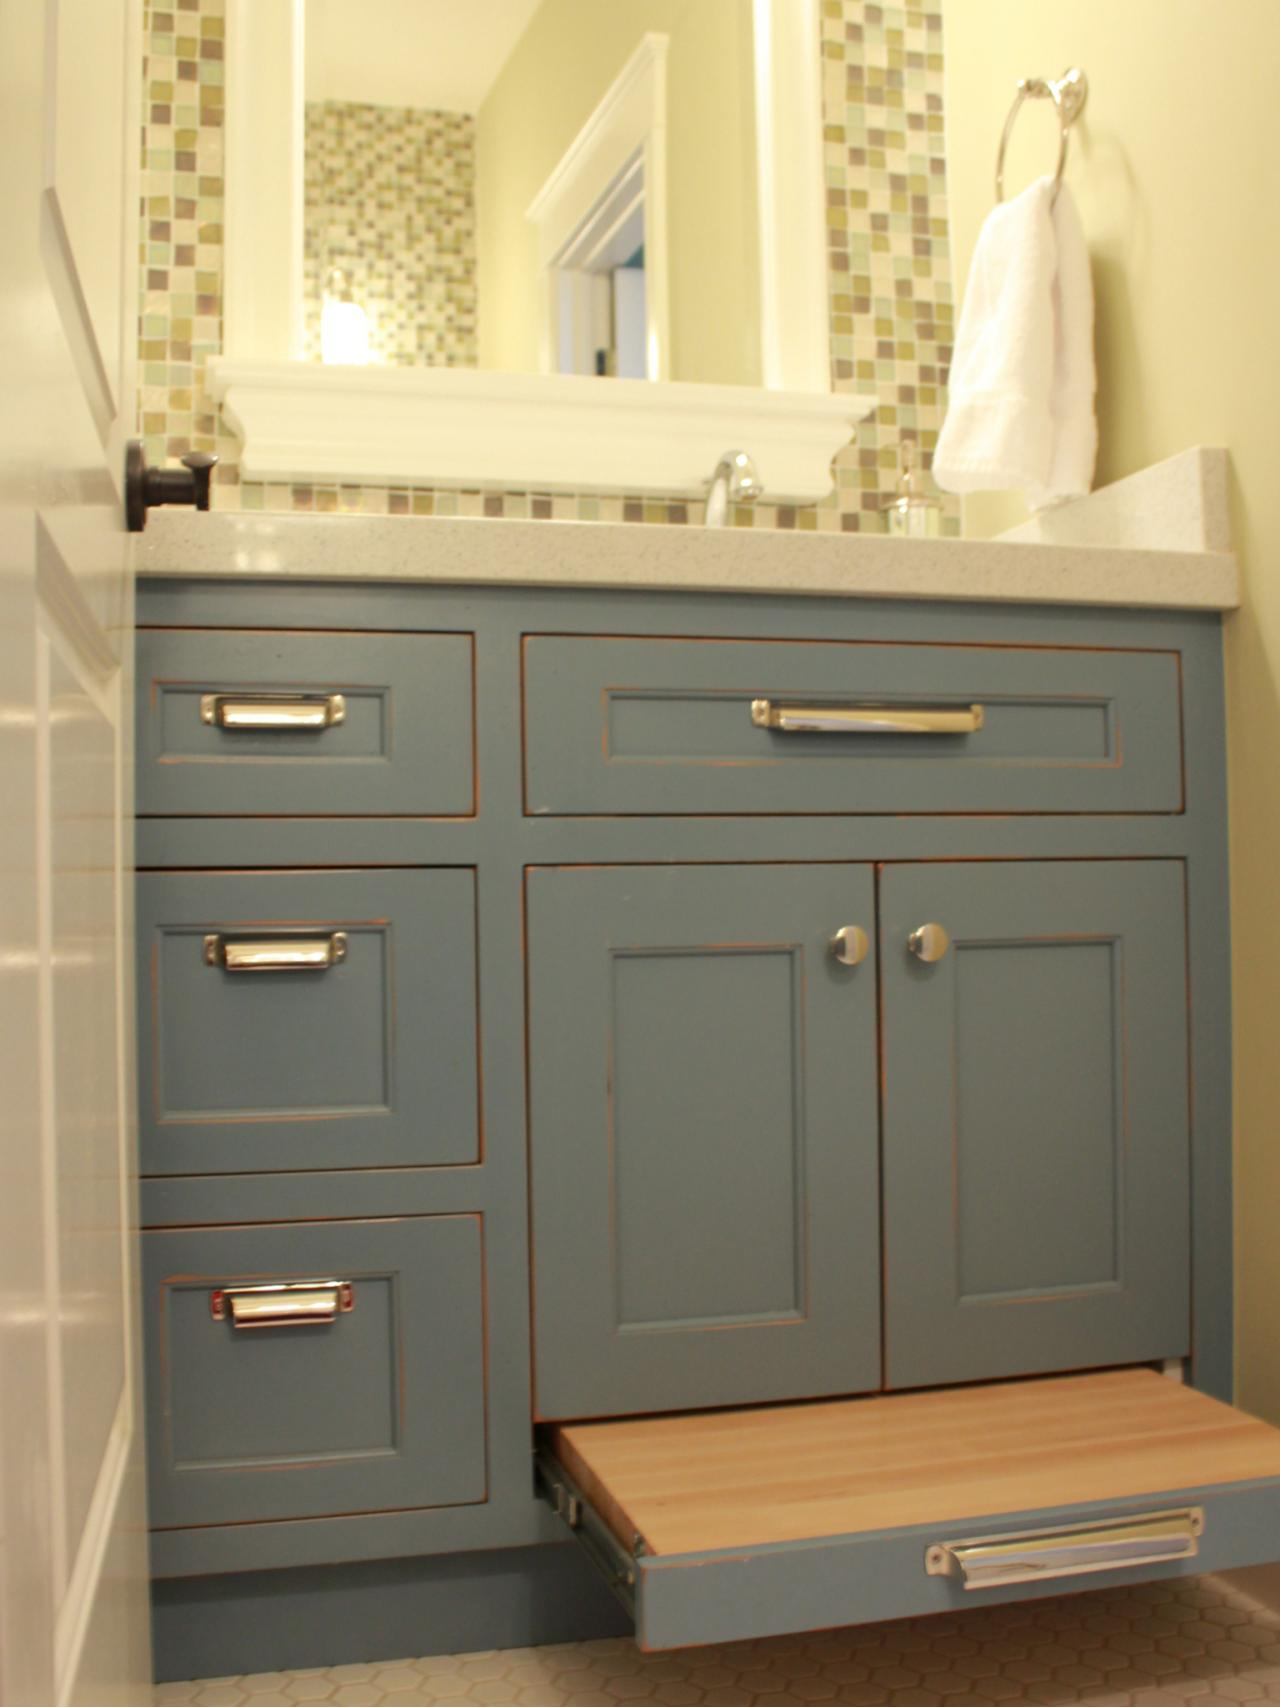 Traditional Bathroom Vanities | HGTV for traditional bathroom vanity designs  173lyp